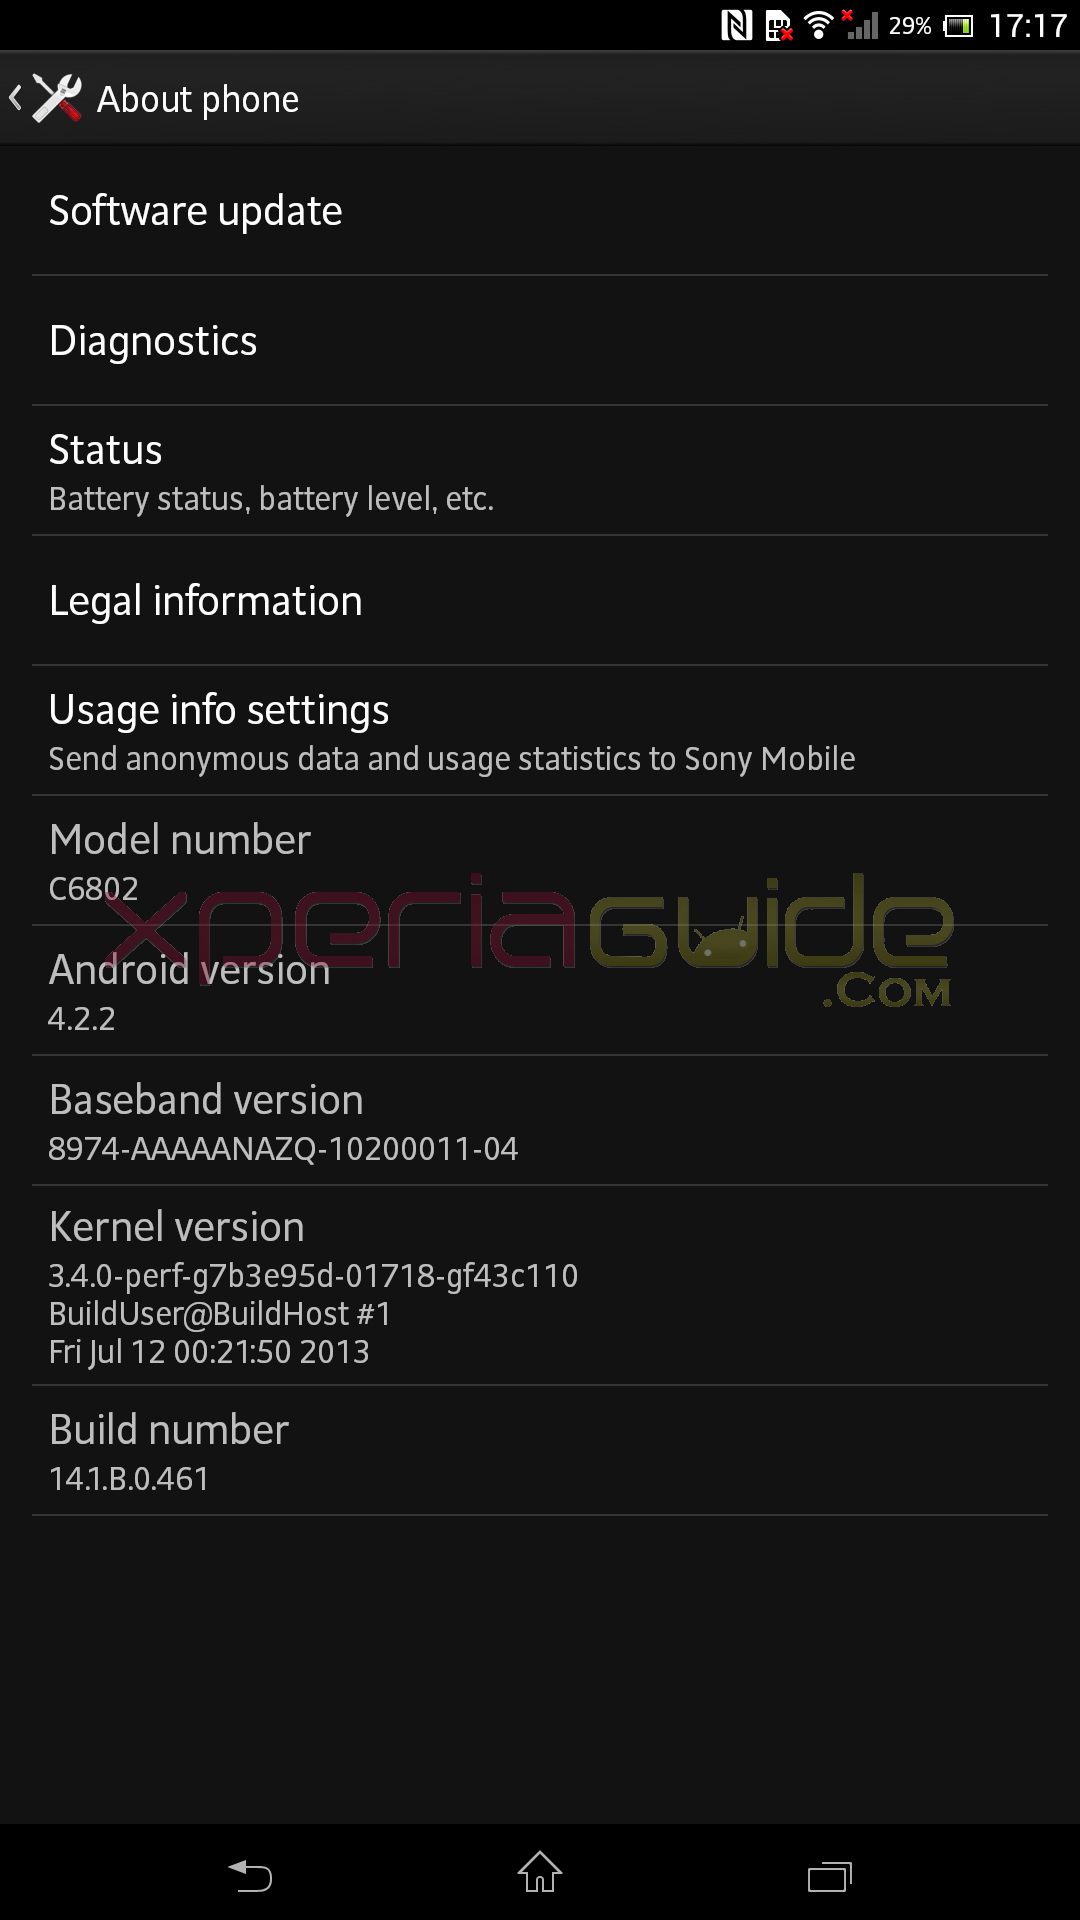 Sony Xperia Z Ultra C6802 Android 4.2.2 14.1.B.0.461 firmware Details